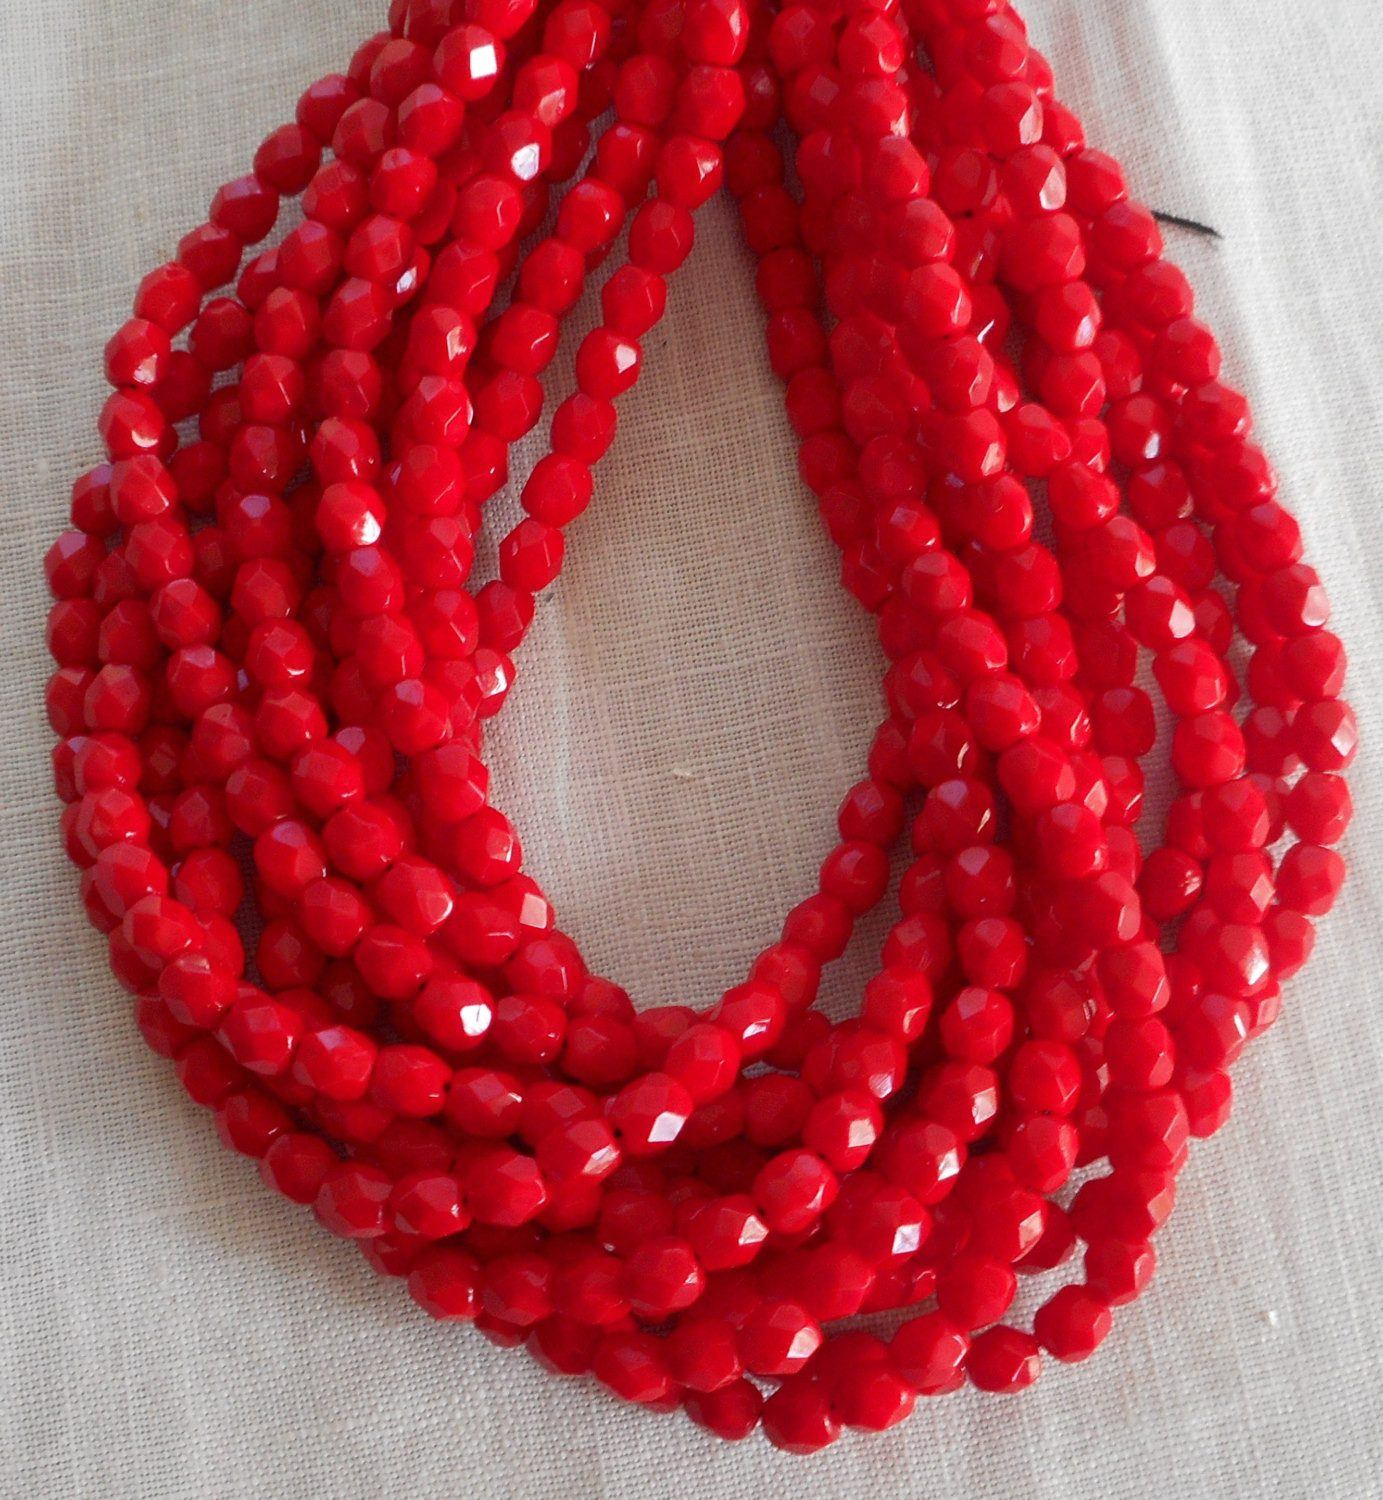 set nigerian beaded red ms product trendy african for beads necklace making gold new dhgate jewelry com fashion lady party vv wedding from